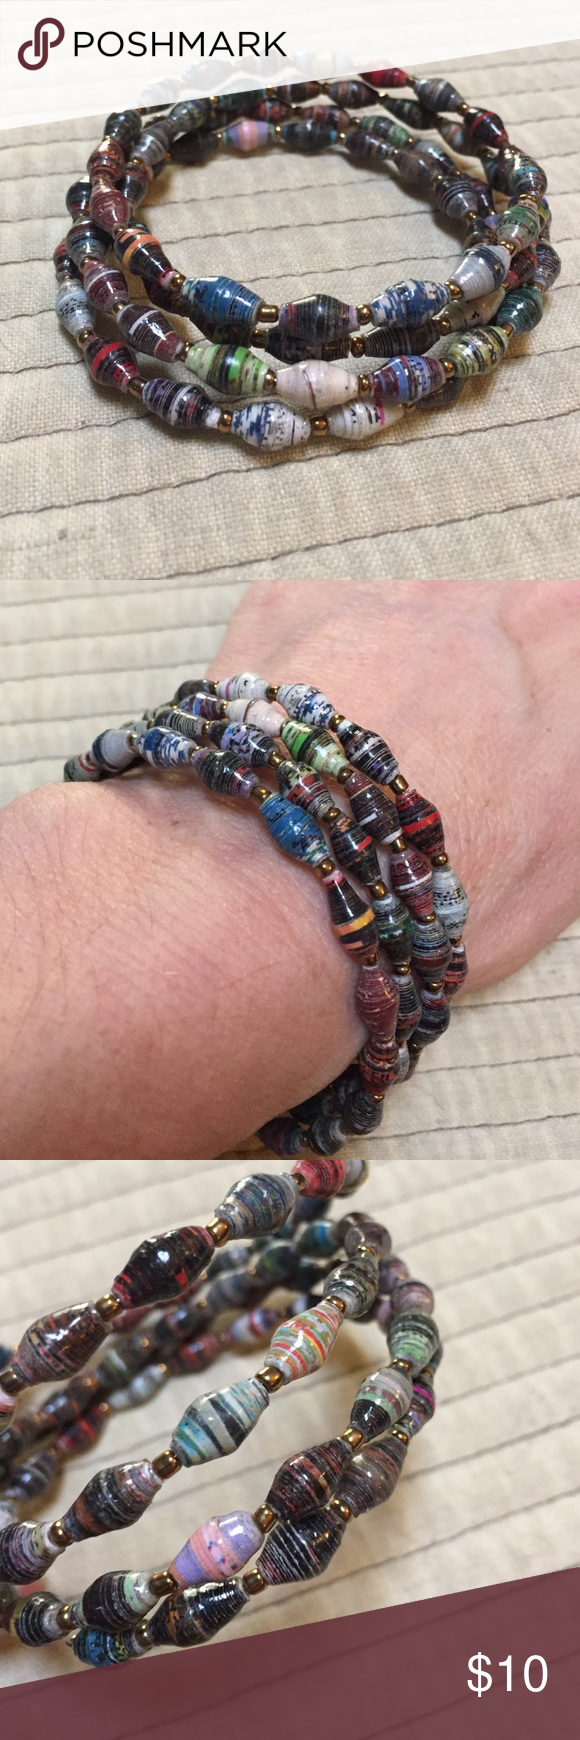 """Multi color Bracelet. This bracelet is 1 continuous spiral strand. It fits all wrist sizes. """"Beads"""" are rolled recycled paper. Jewelry Bracelets"""